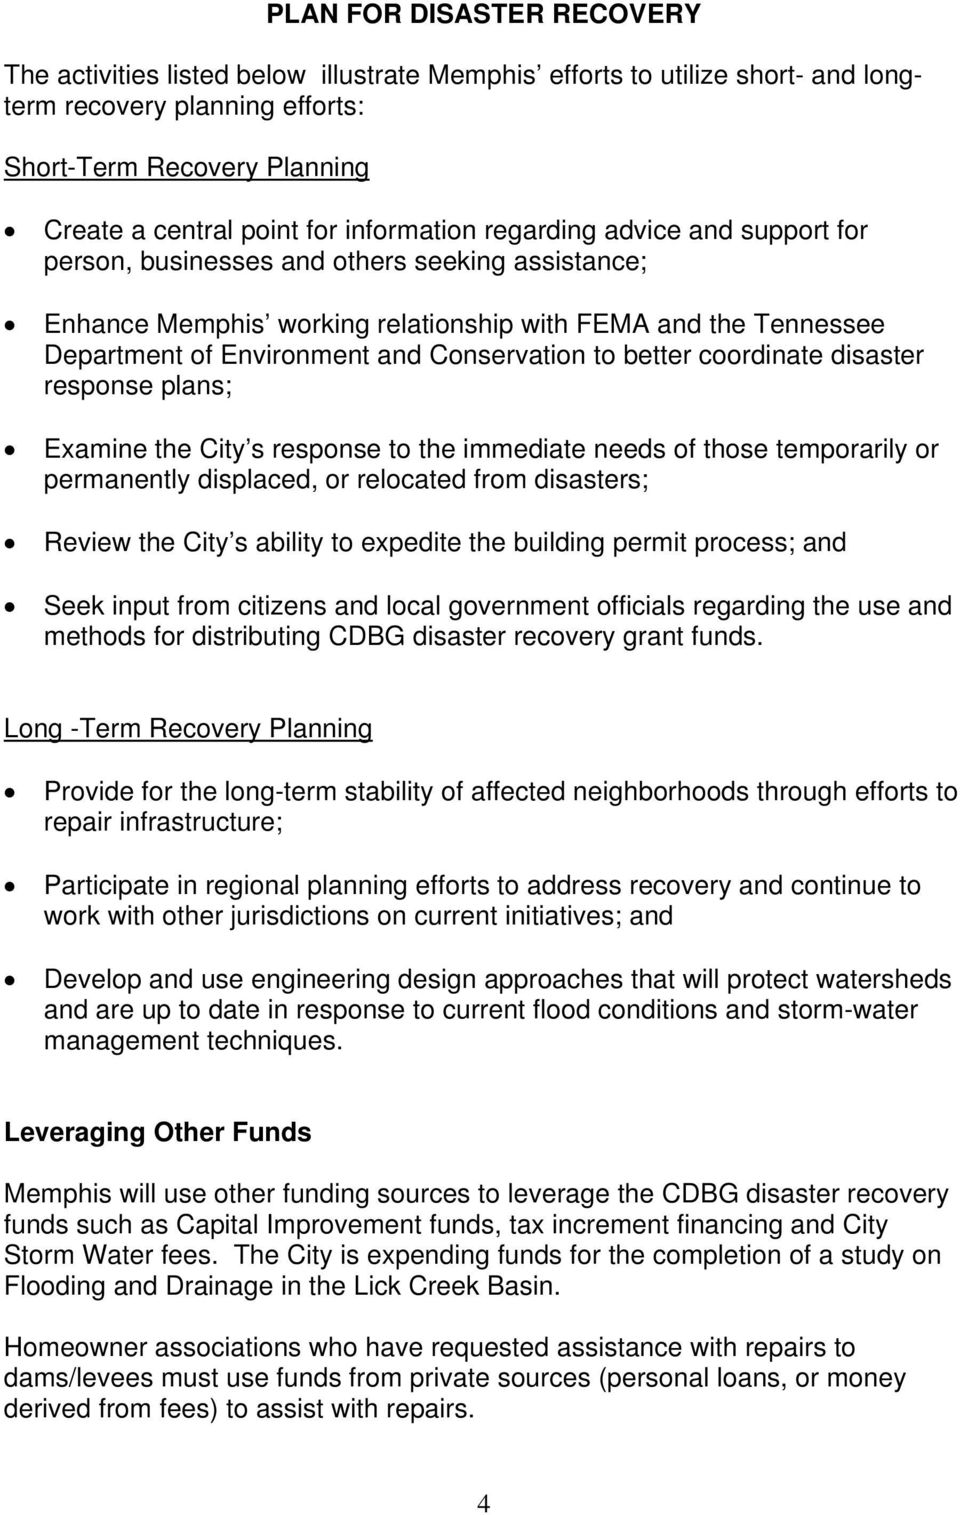 Conservation to better coordinate disaster response plans; Examine the City s response to the immediate needs of those temporarily or permanently displaced, or relocated from disasters; Review the